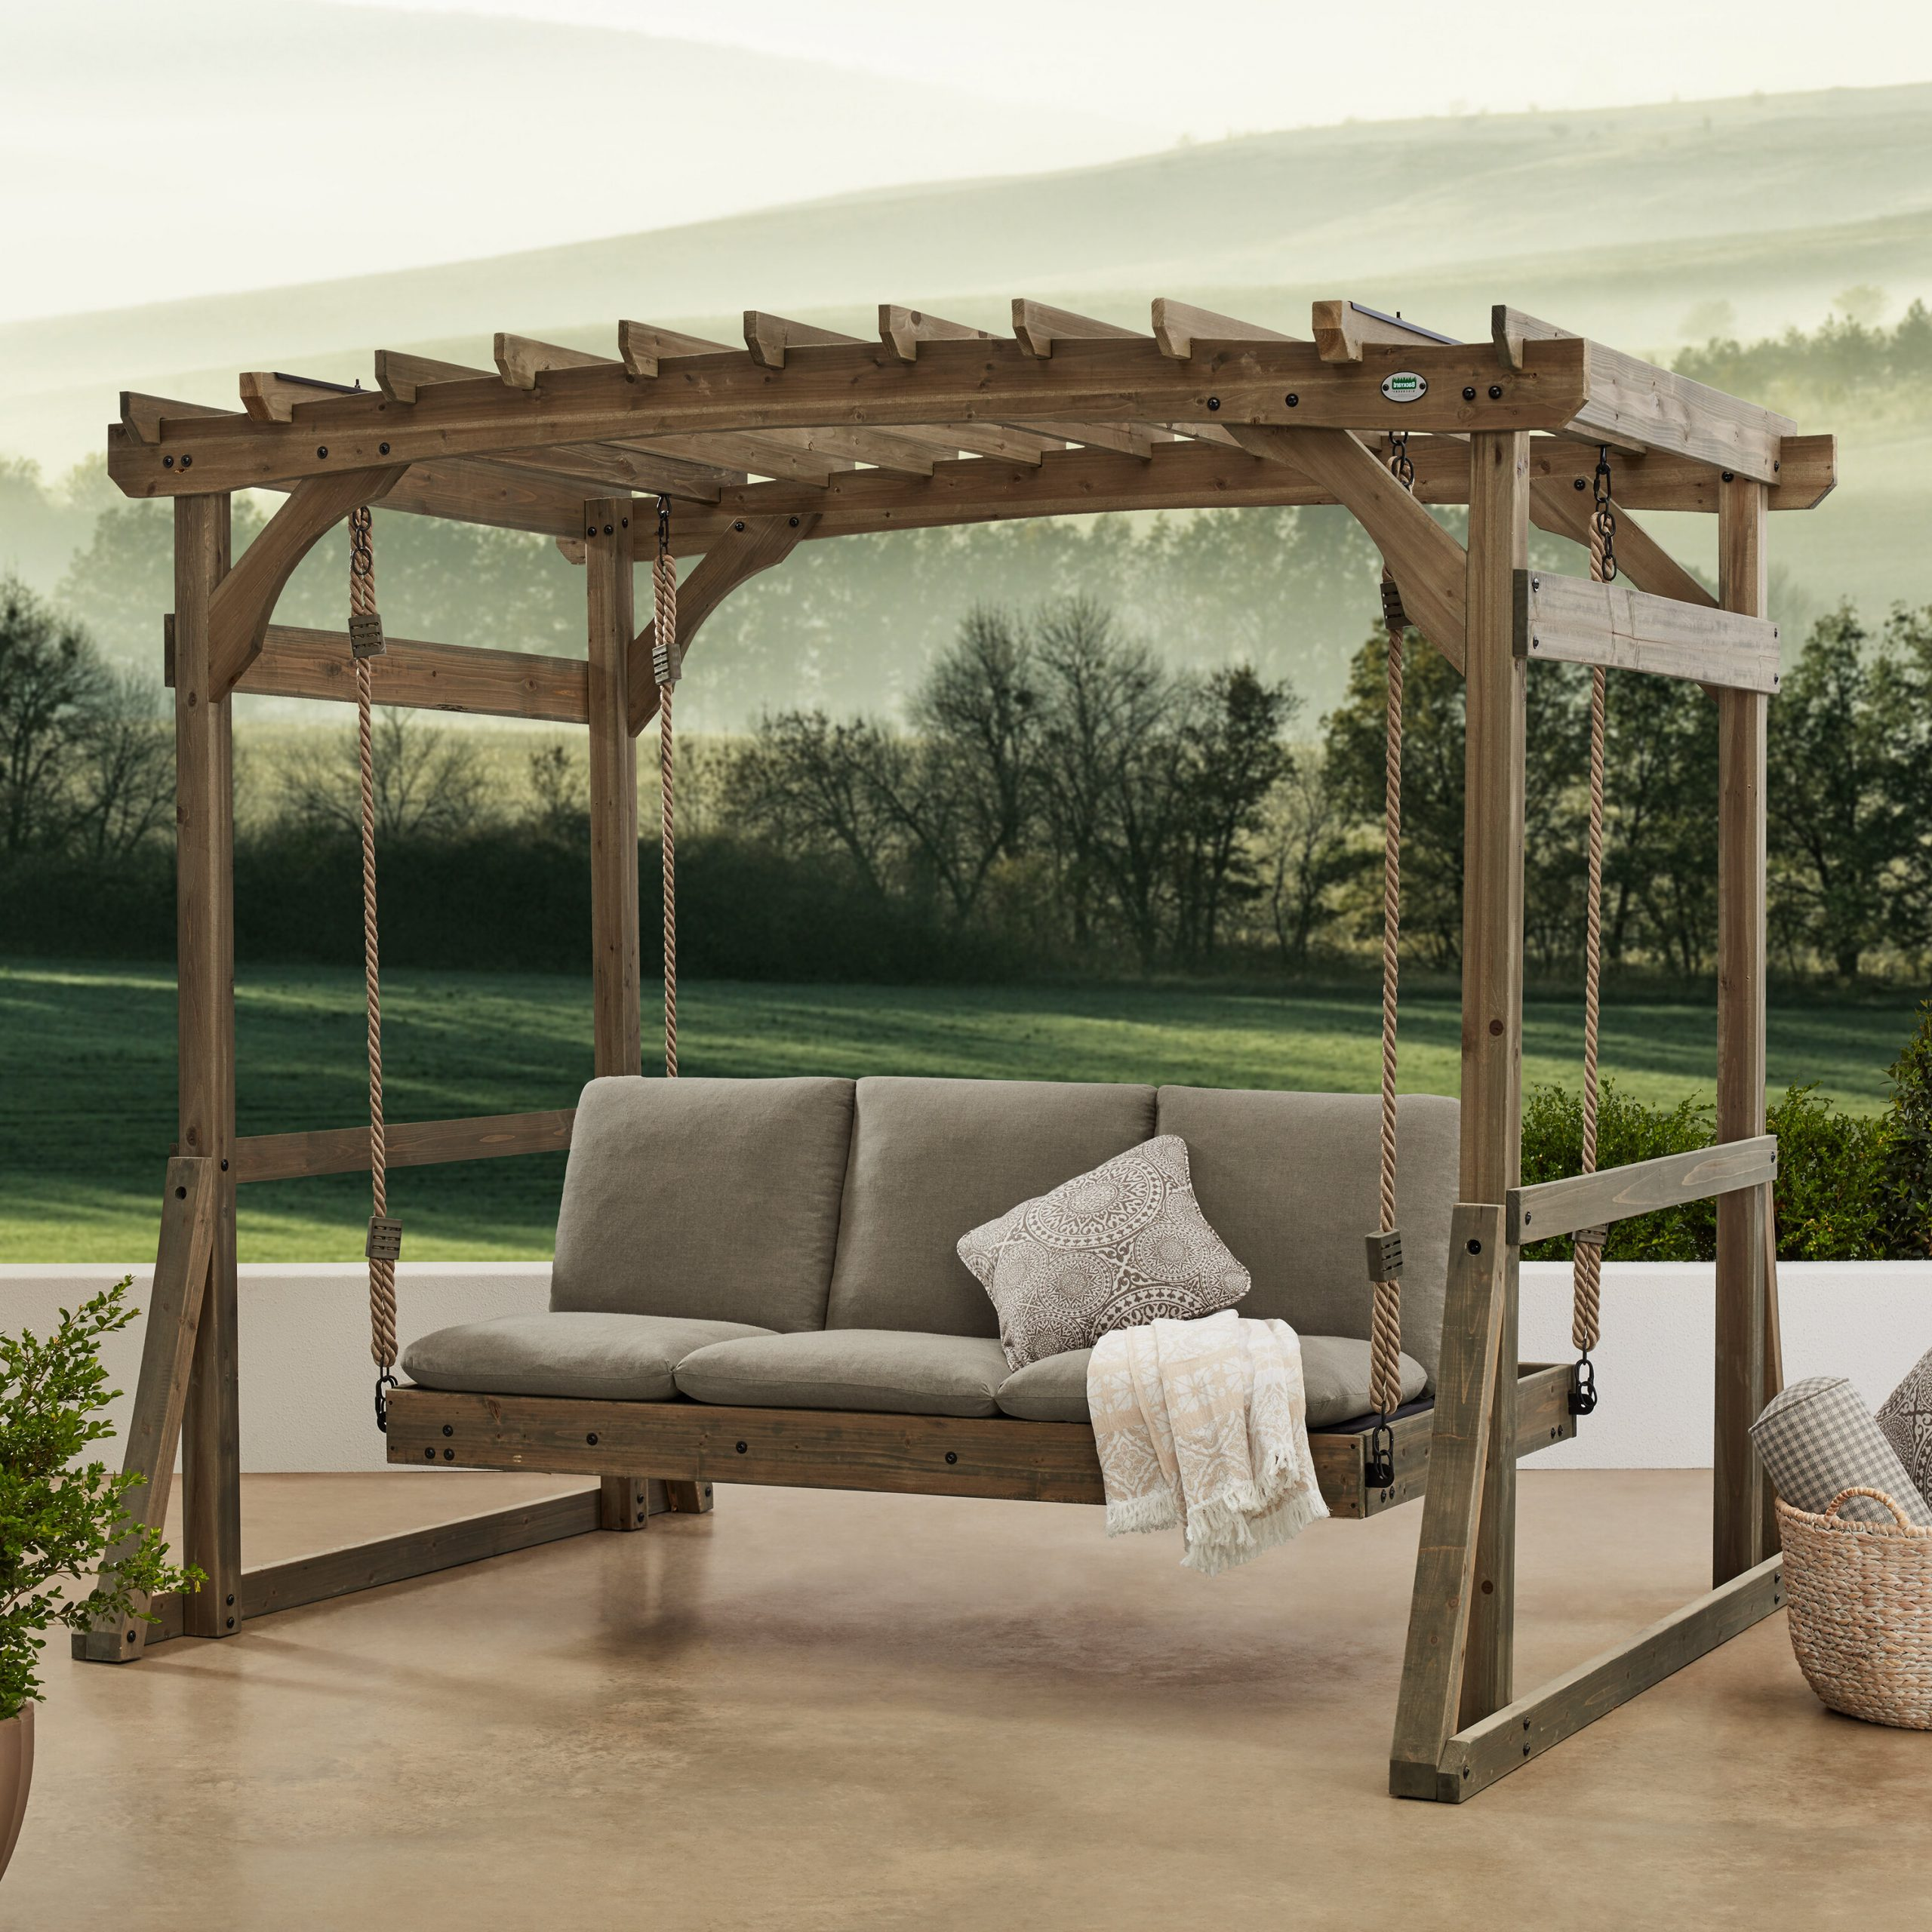 Pergola Porch Swings With Stand With Regard To Famous Claremont Pergola Lounger Porch Swing With Stand (View 30 of 30)